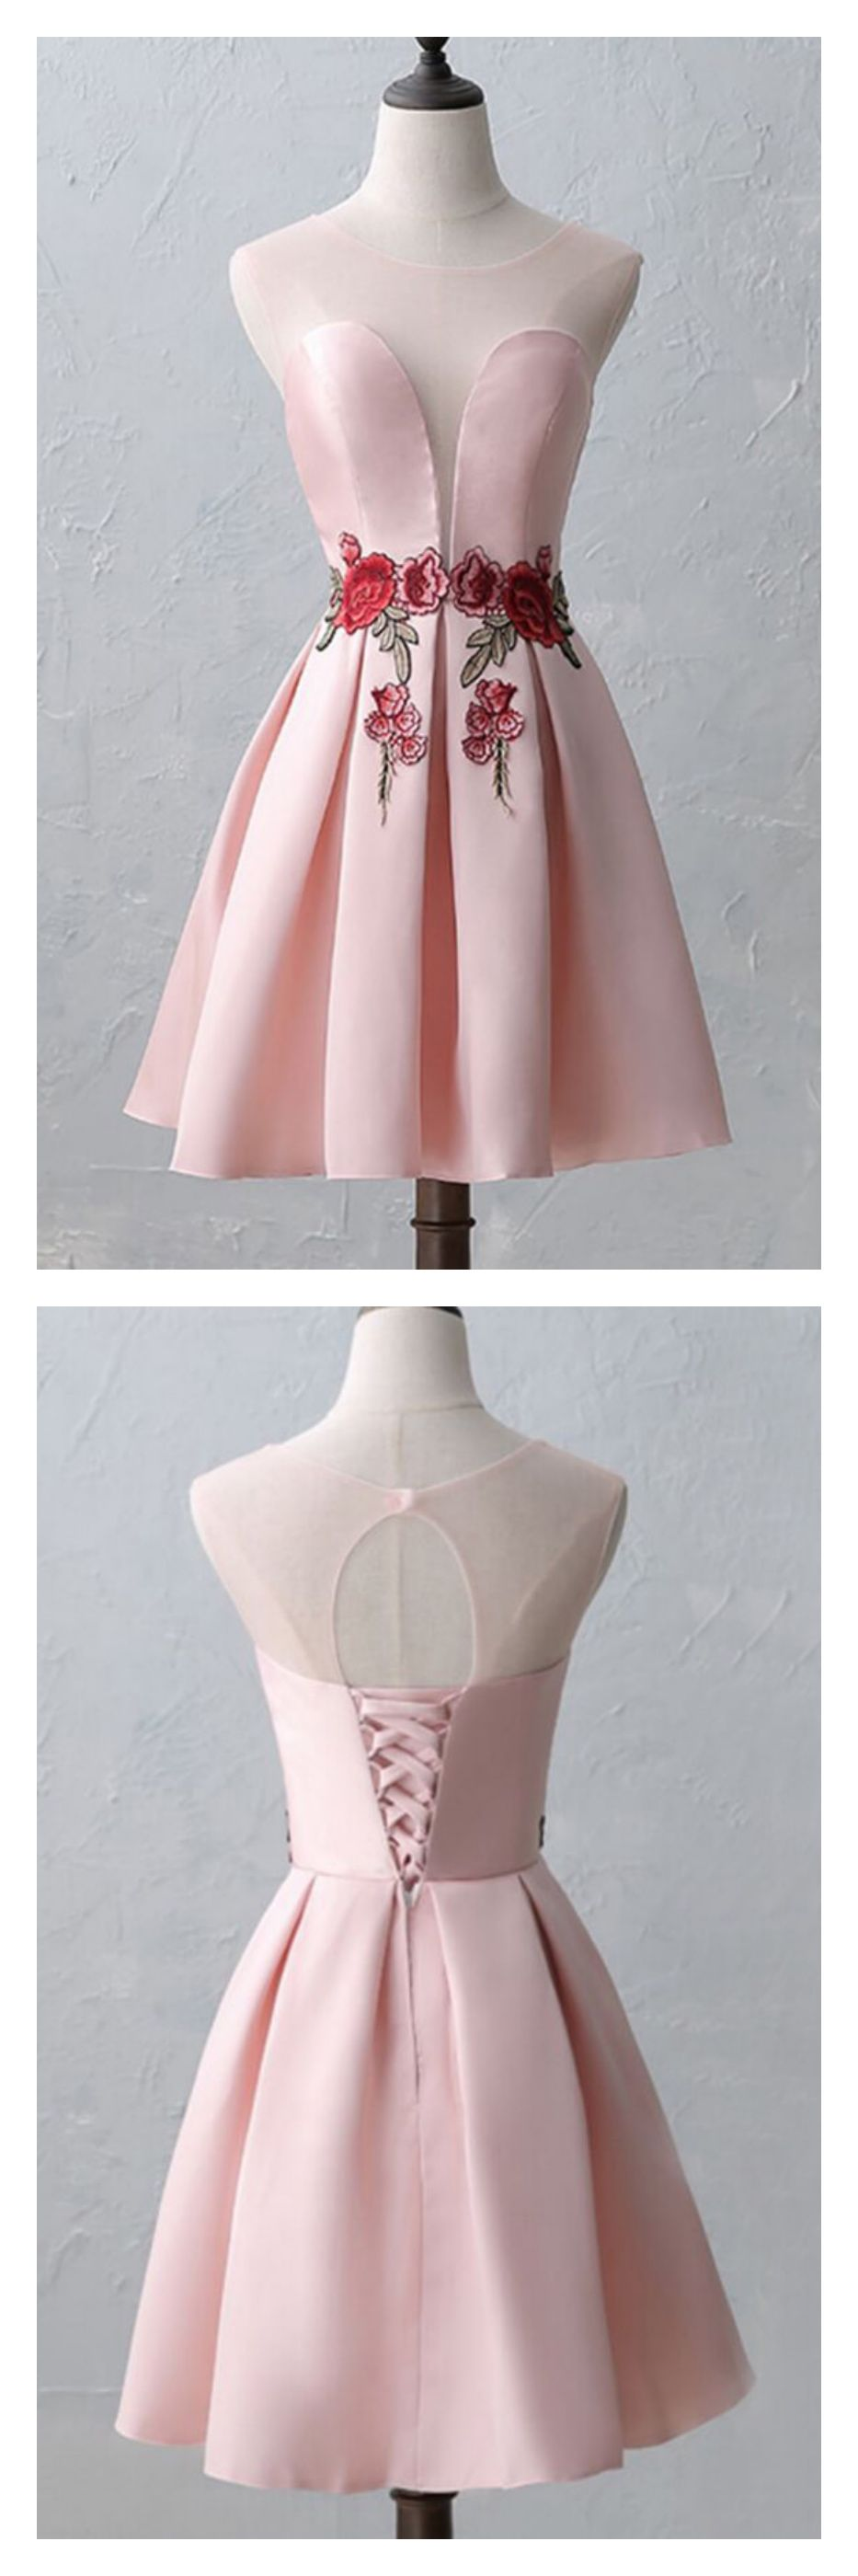 Pink satin short homecoming graduation dresses with flowered